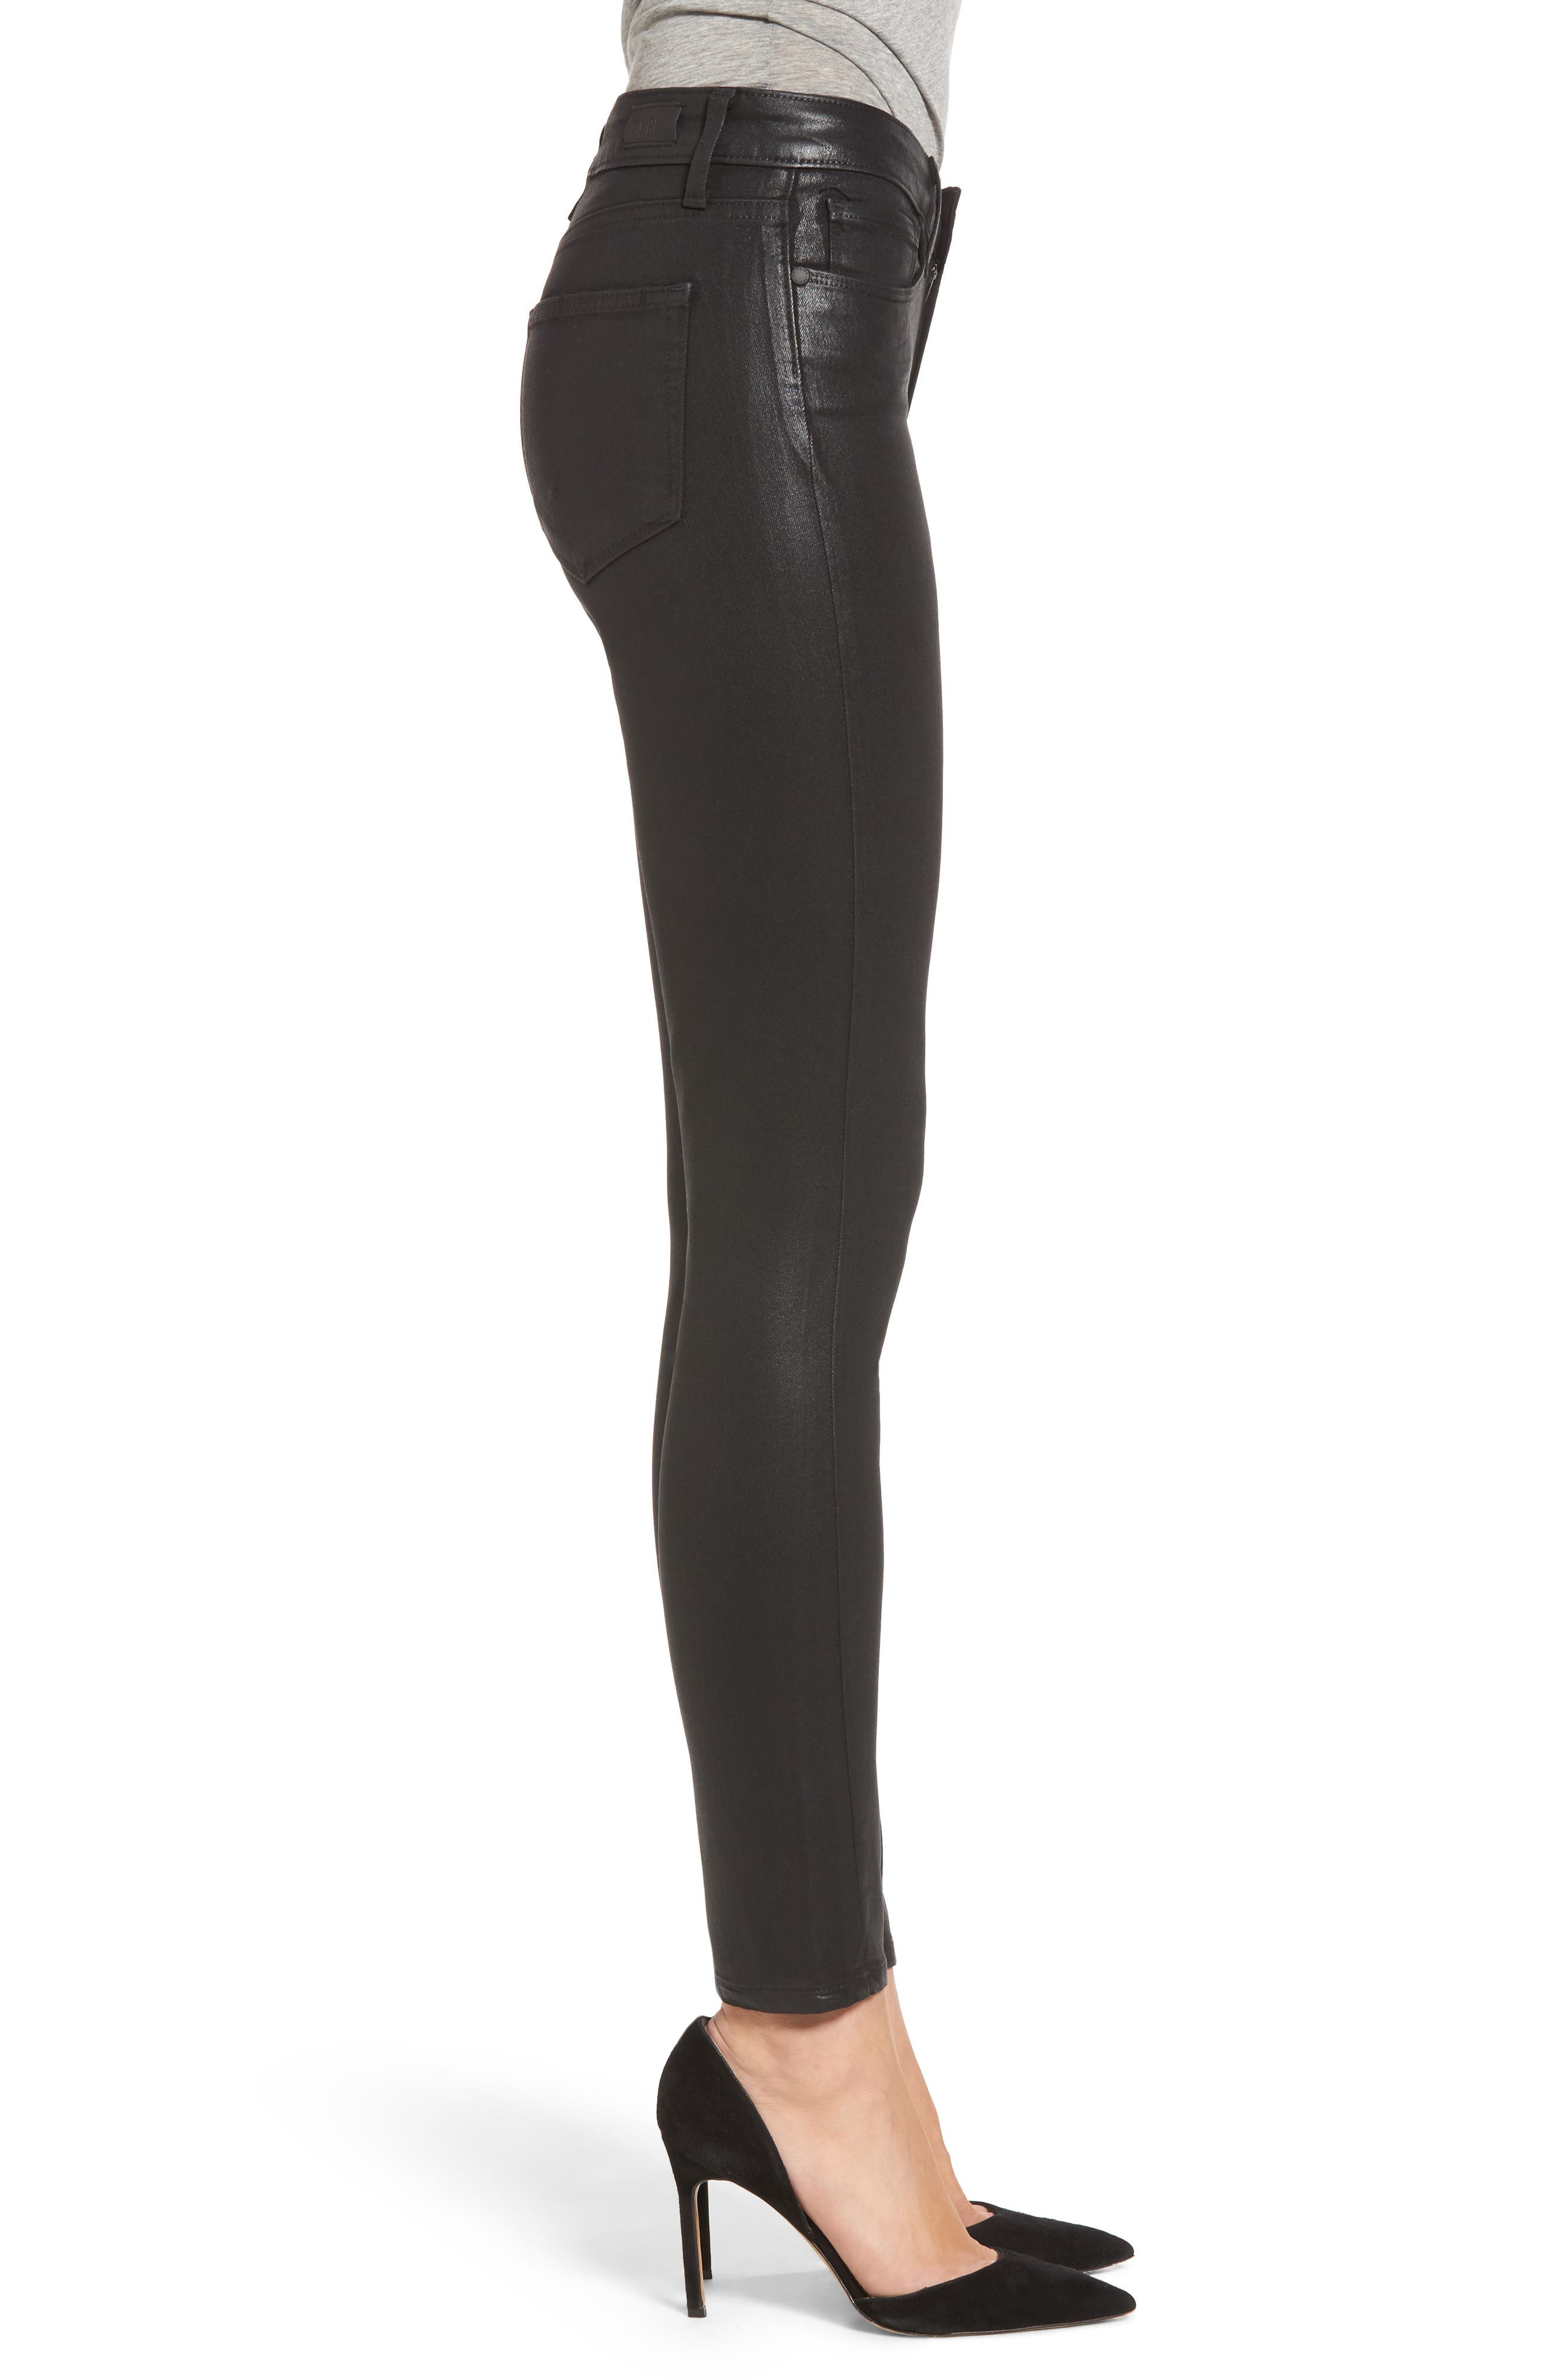 PAIGE,                             Transcend - Hoxton High Waist Ankle Skinny Jeans,                             Alternate thumbnail 3, color,                             LUXE BLACK COATED